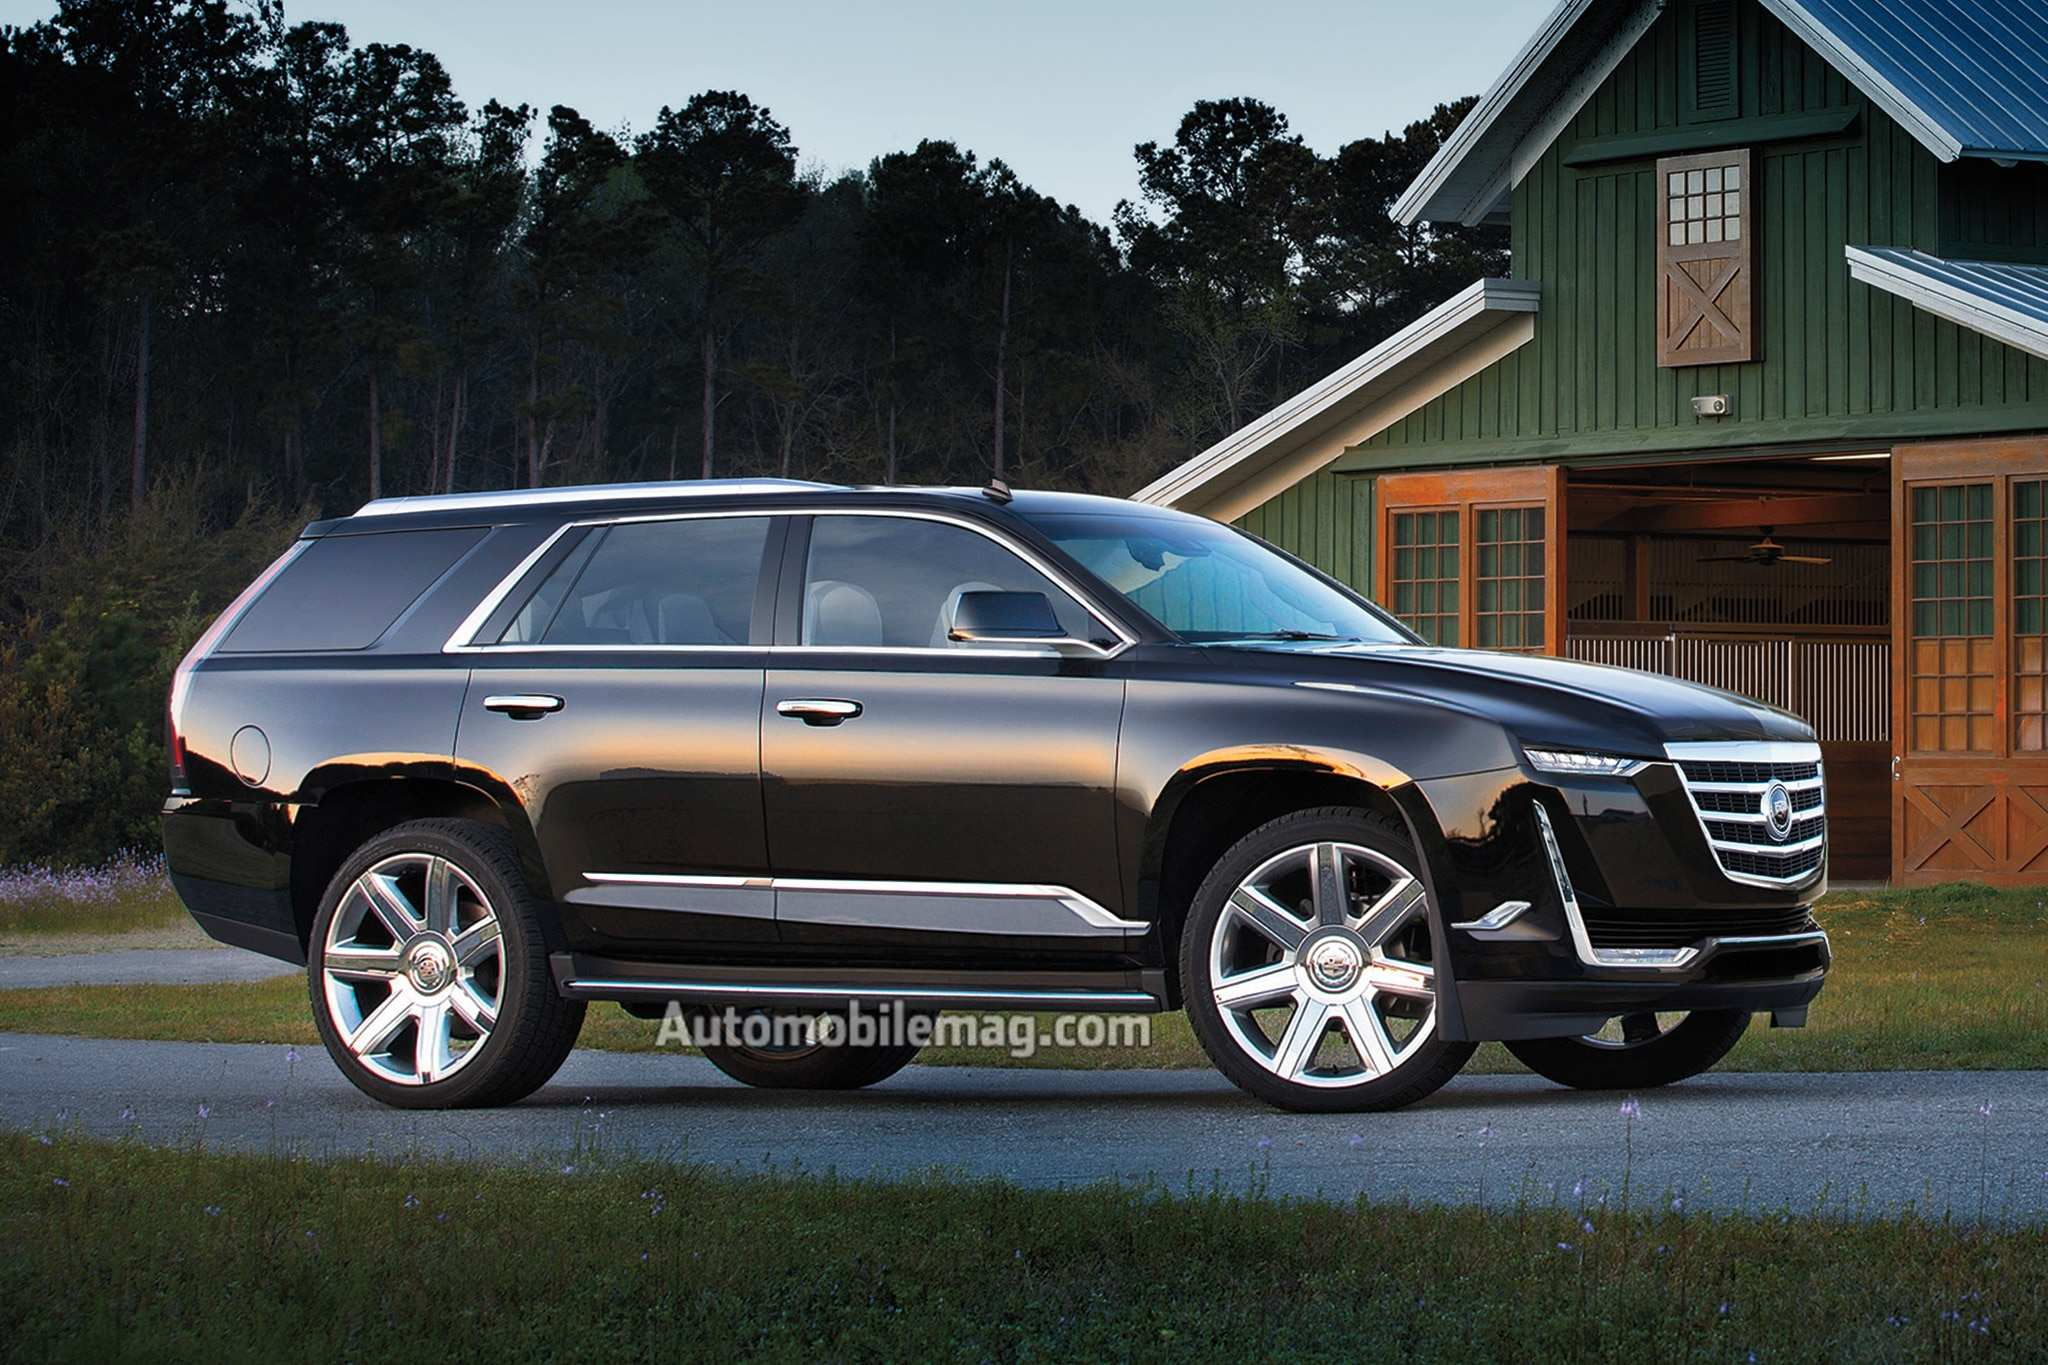 17 New Cadillac Escalade 2020 Release Date Performance by Cadillac Escalade 2020 Release Date